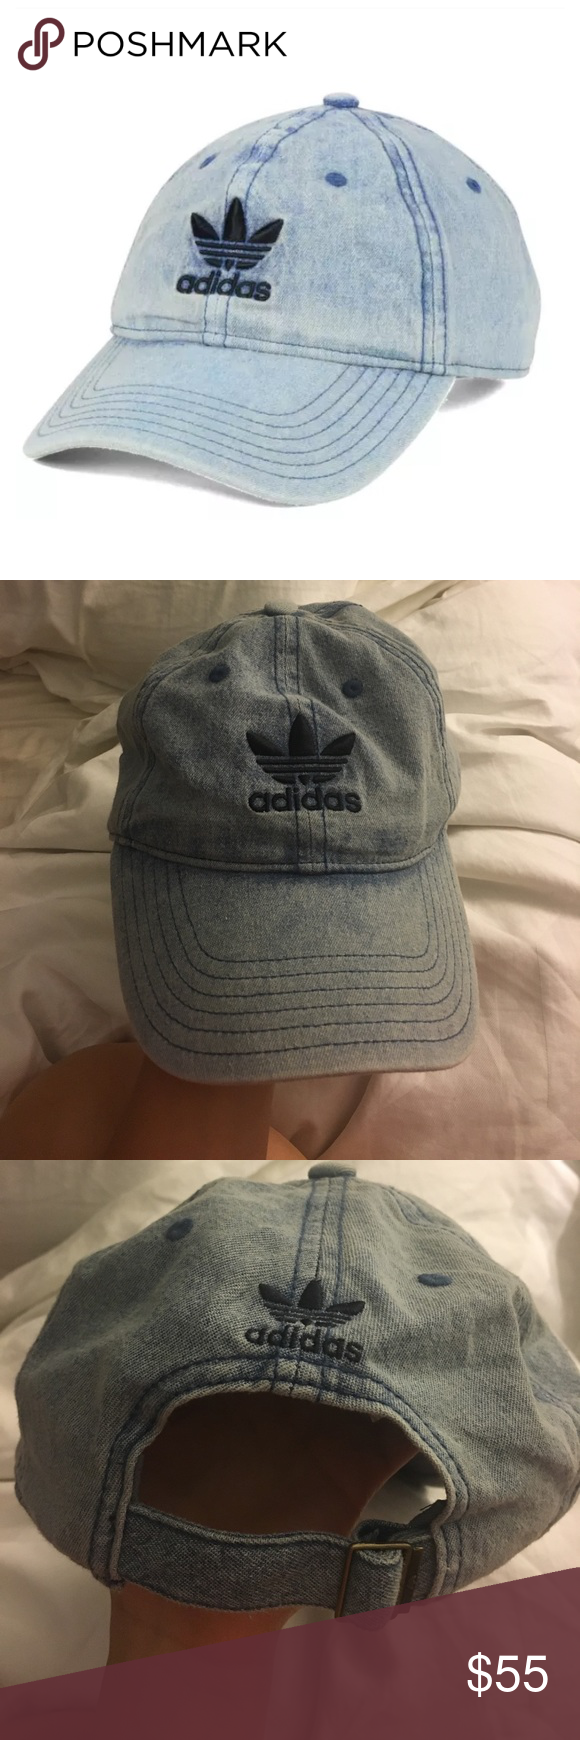 b33013ff03c NEW ADIDAS Originals Relaxed Denim Men Unisex hat Brand new and never worn. Rare  hat